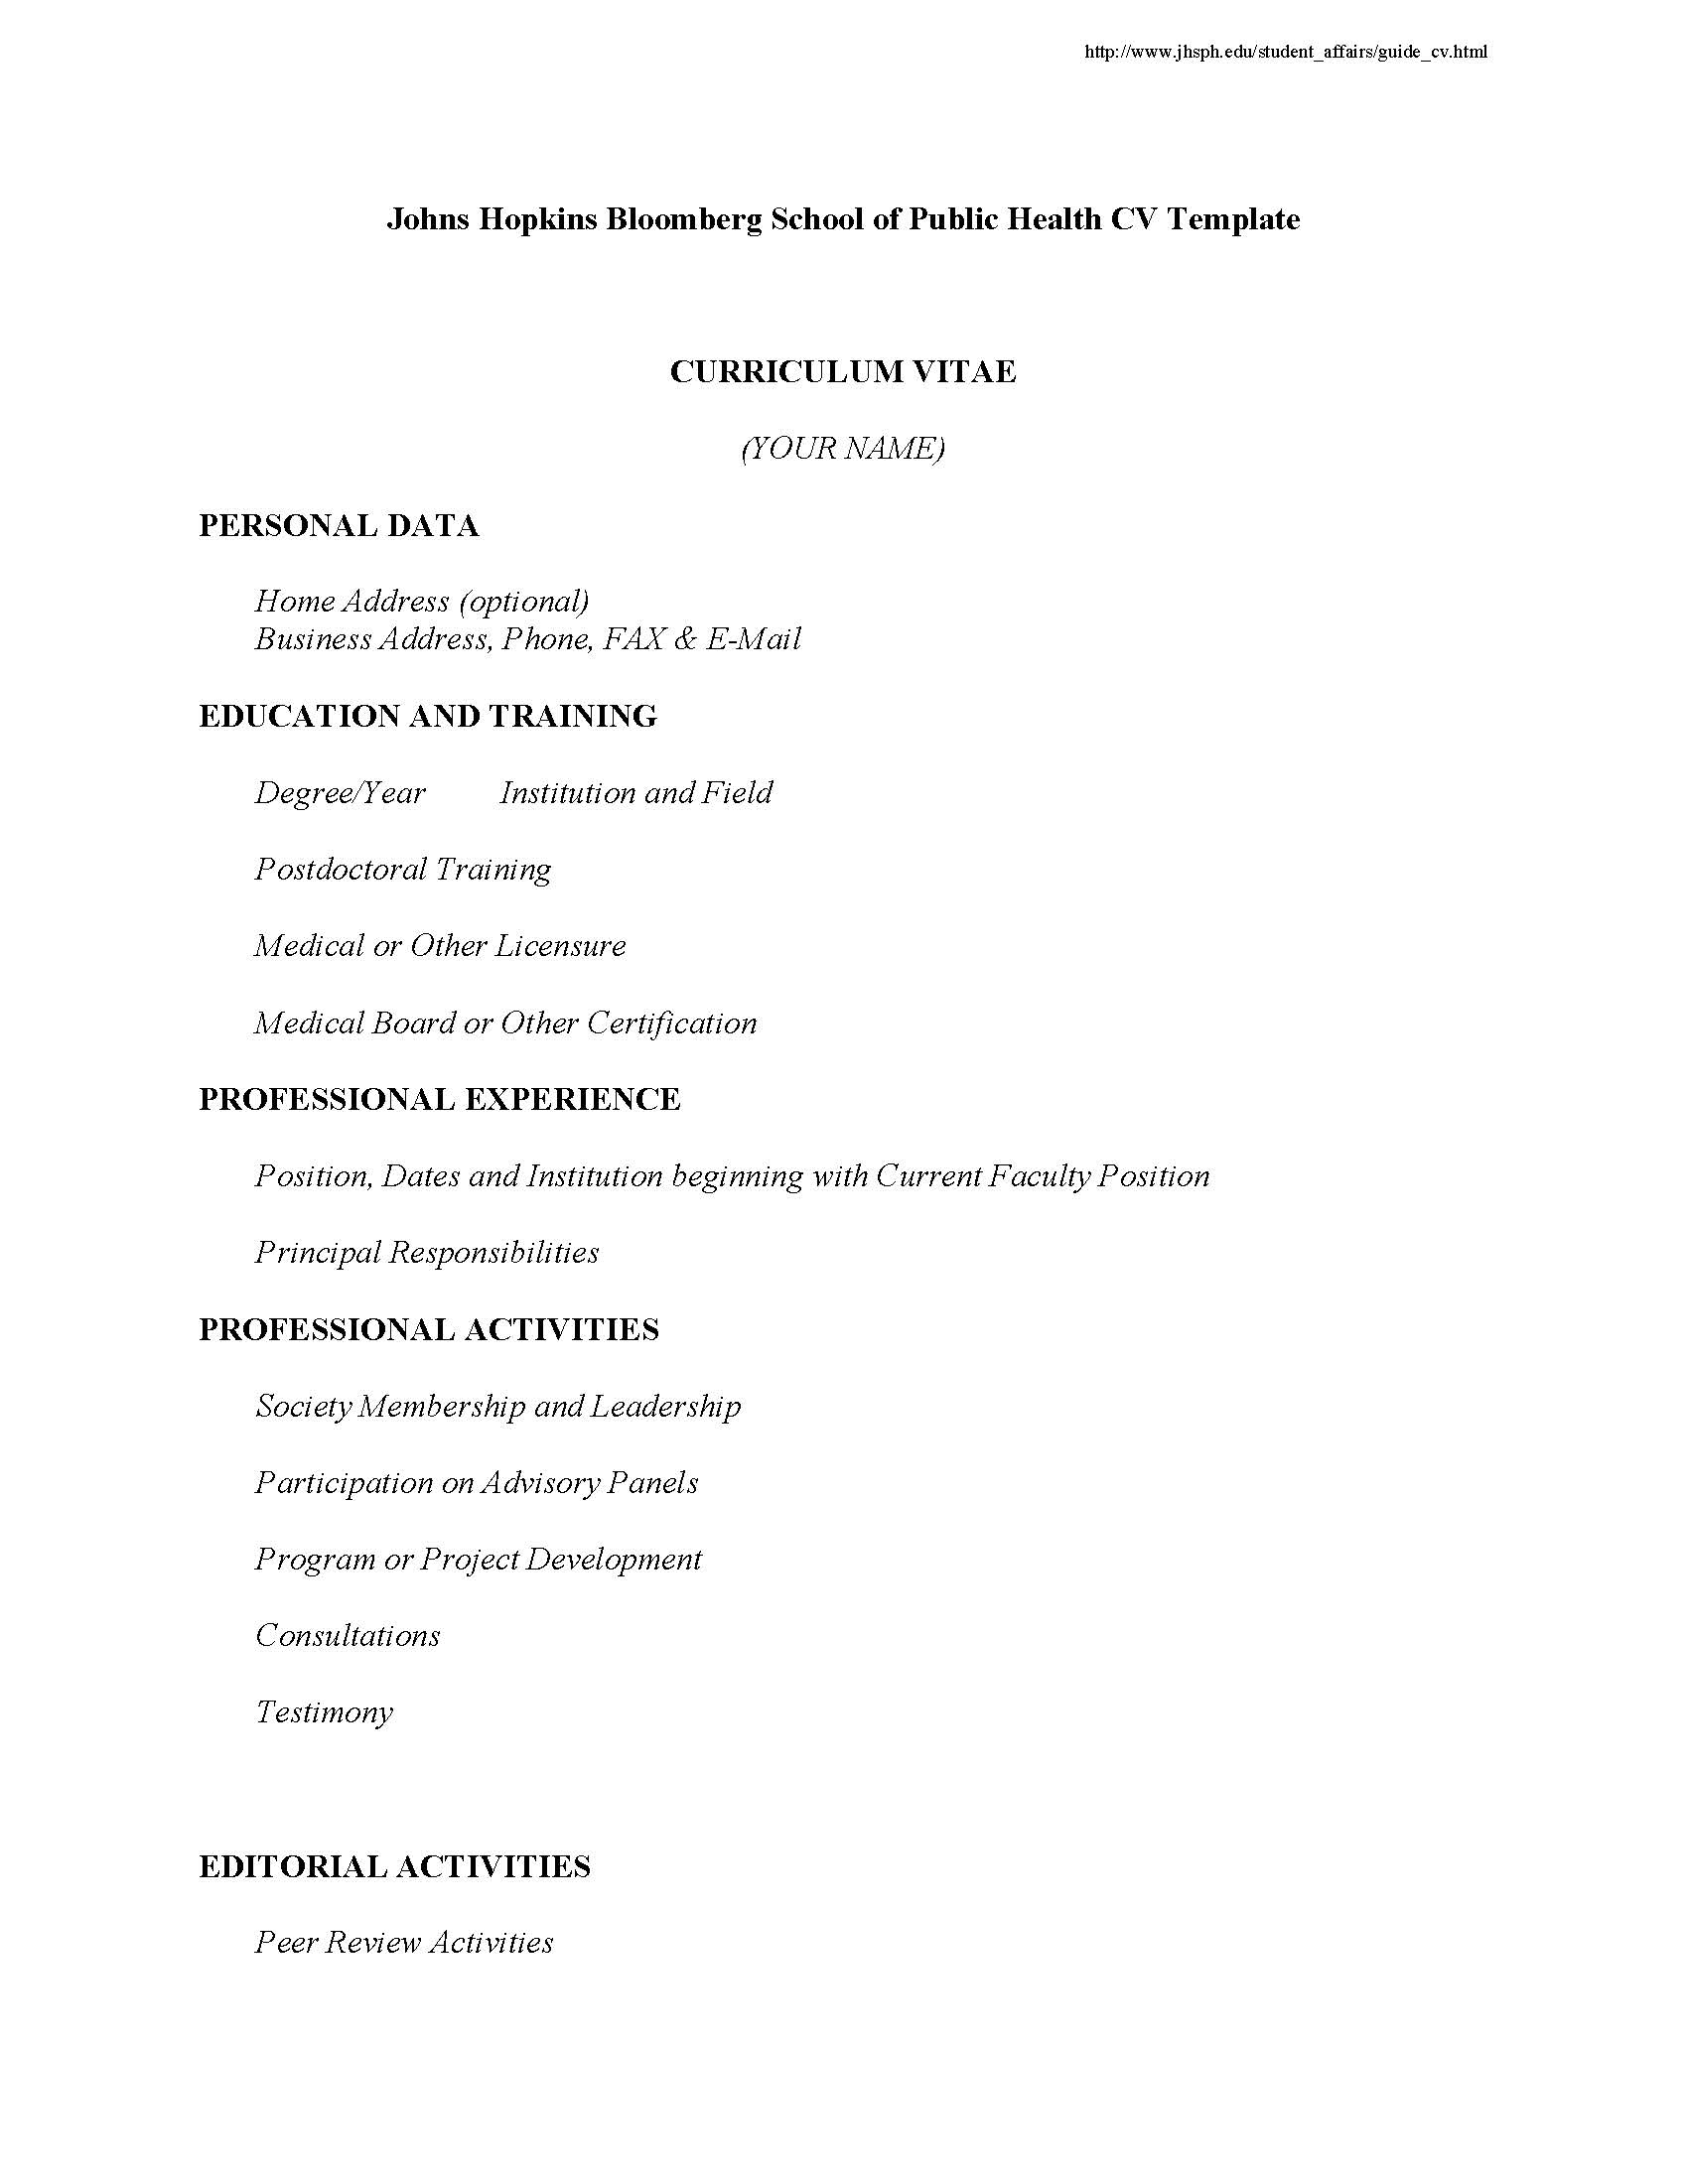 Resumes and cvs career resources for students career jhsph cv template yadclub